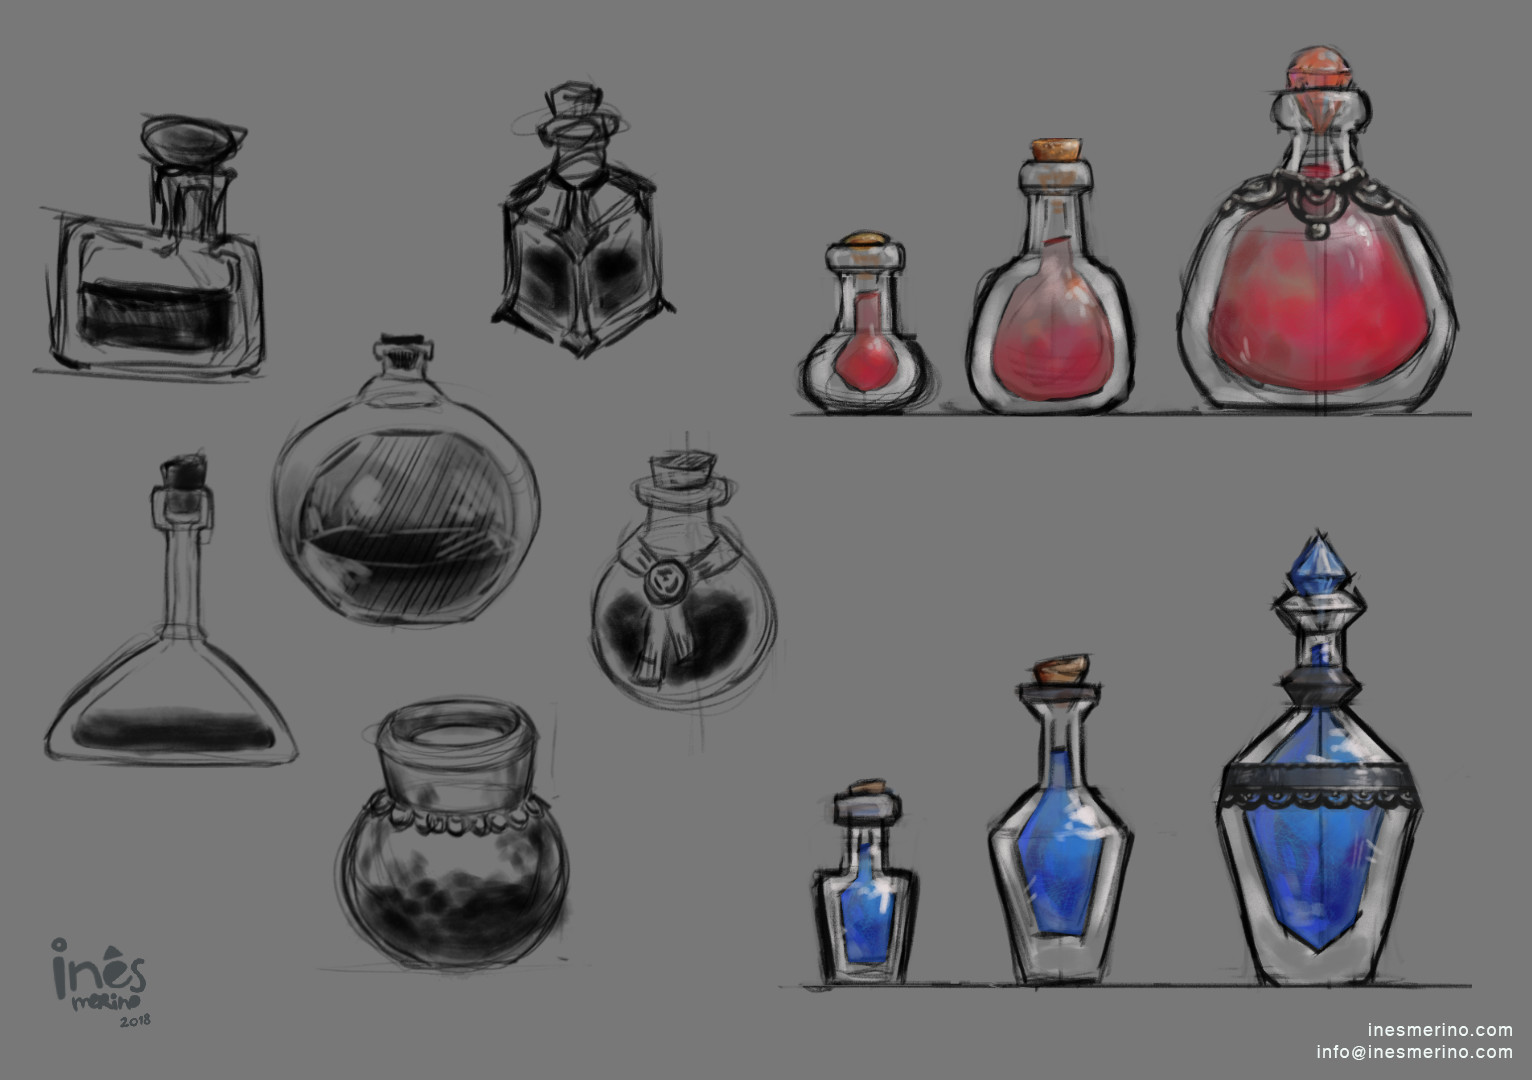 Ines merino 1801 assets 2sk potions0web